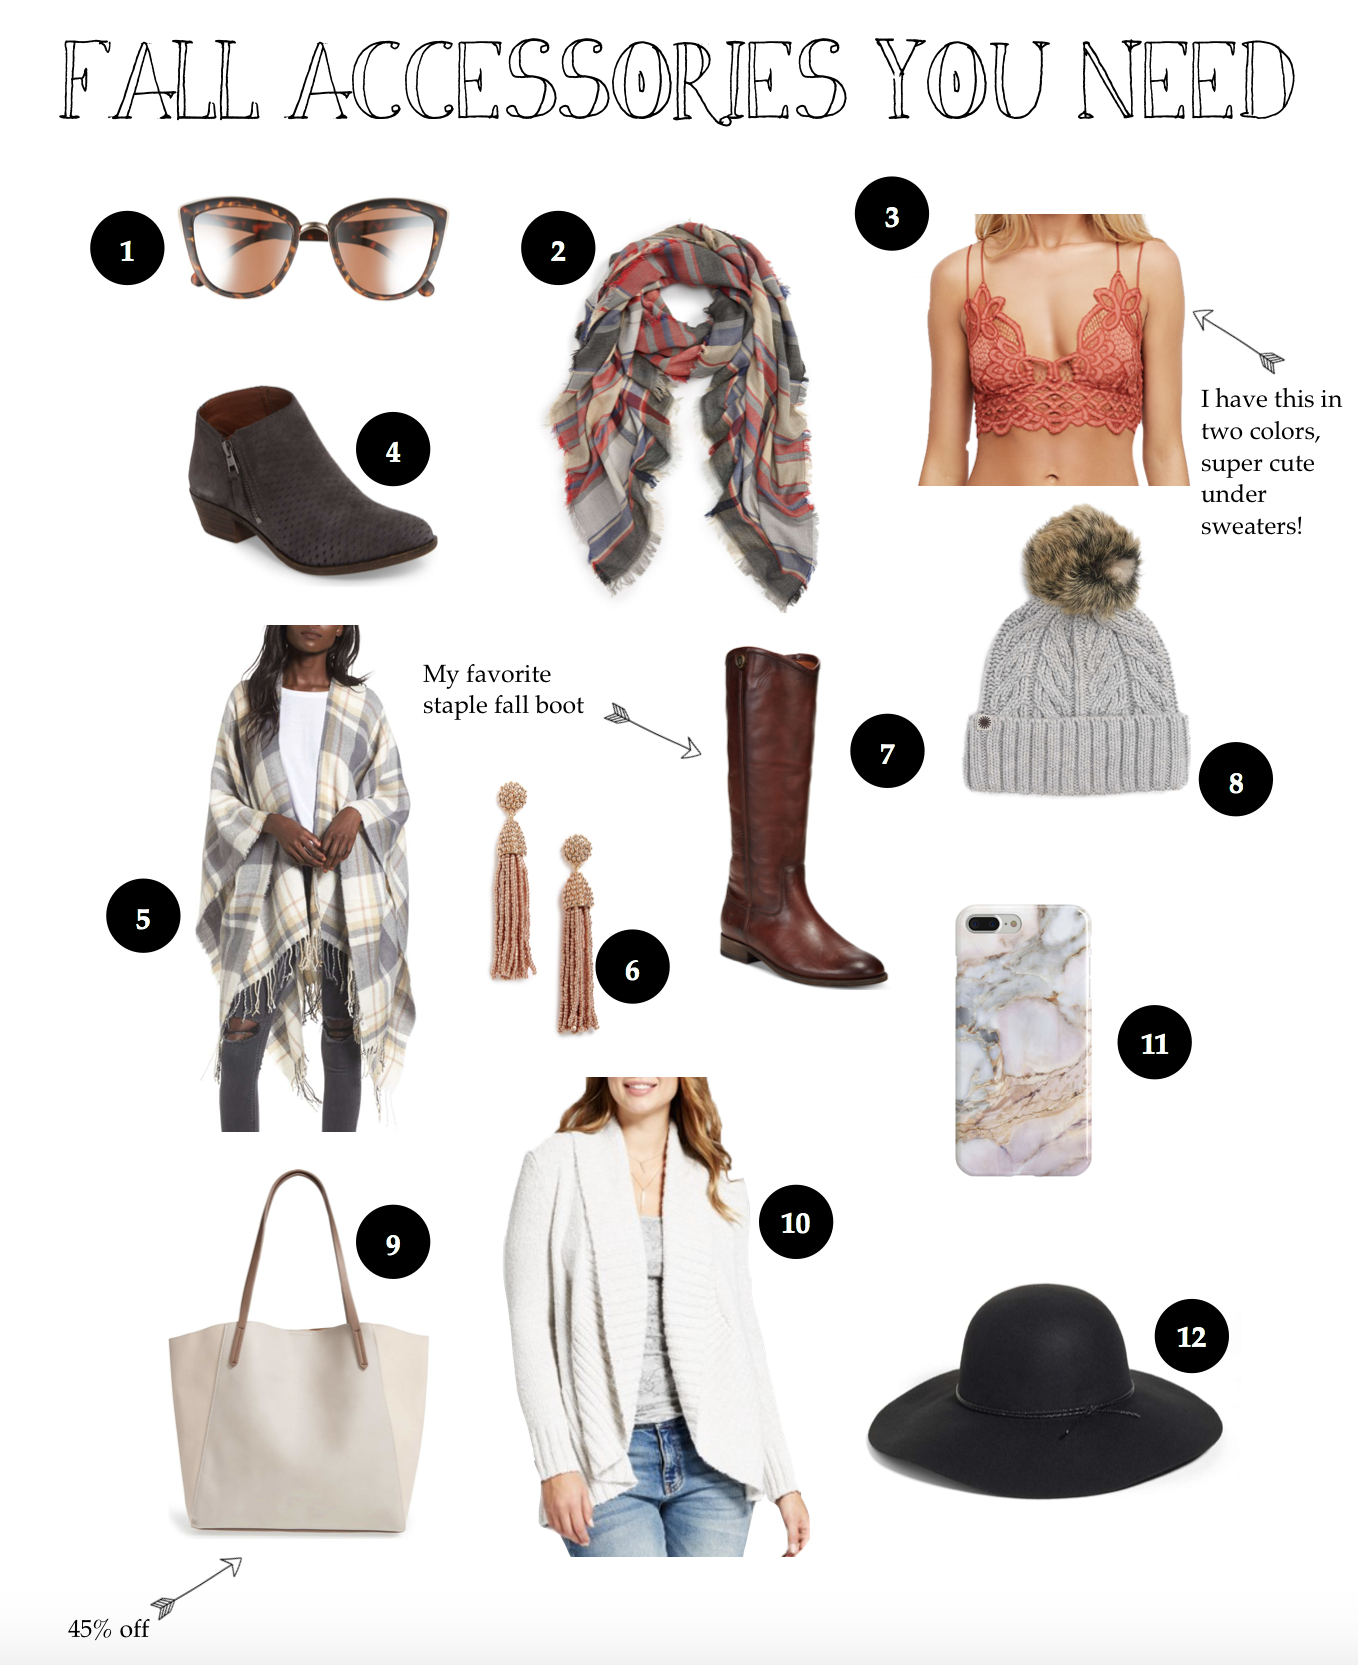 Fall accessories you need! My favorite scarves, sweaters, hats, boots, and more on fashion blog daily dose of charm by lauren Lindmark